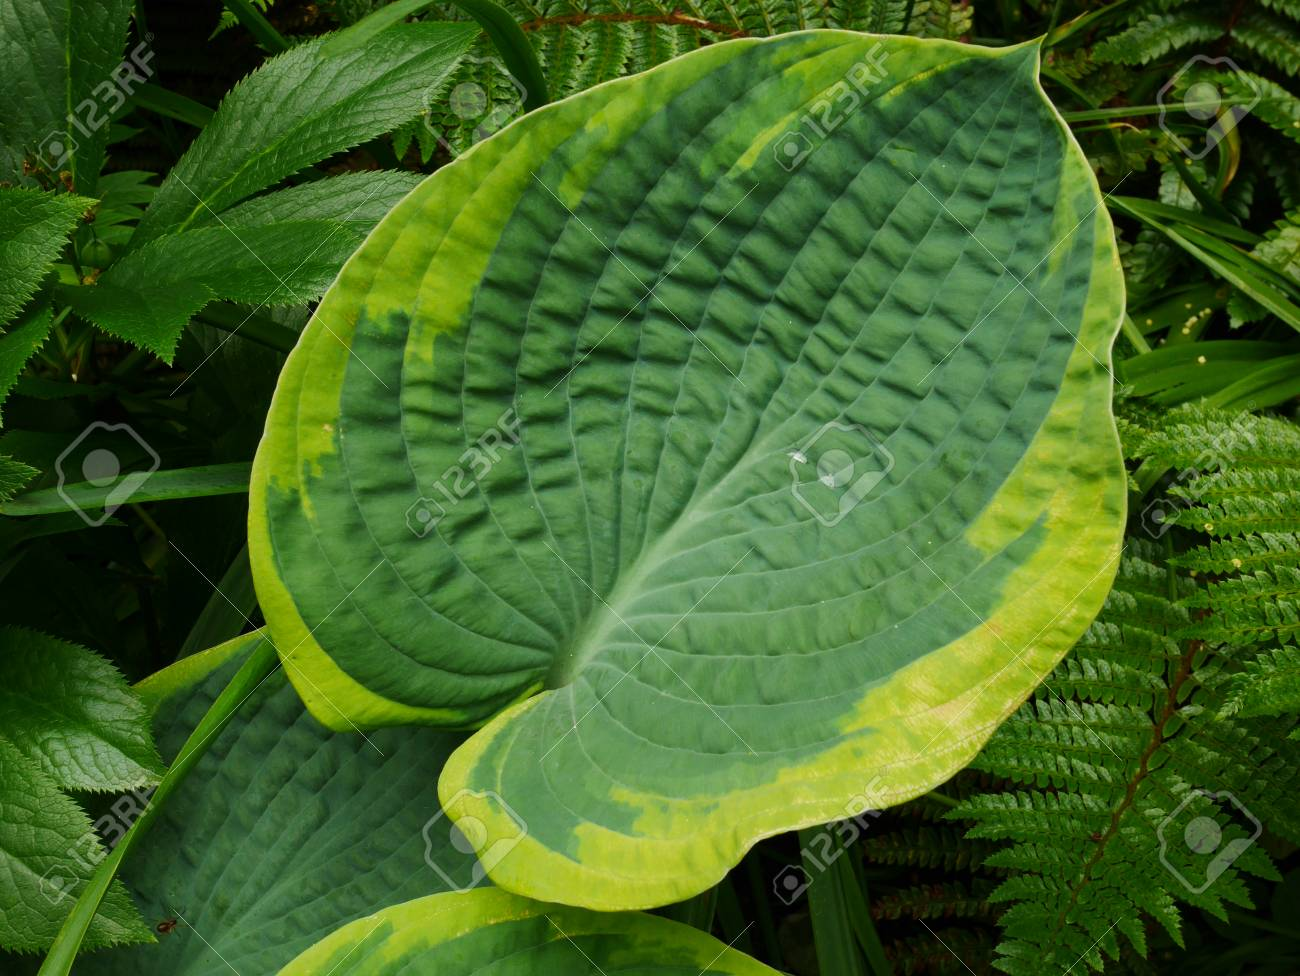 Large Variegated Green Hosta Leaf With Yellow Edges Stock Photo